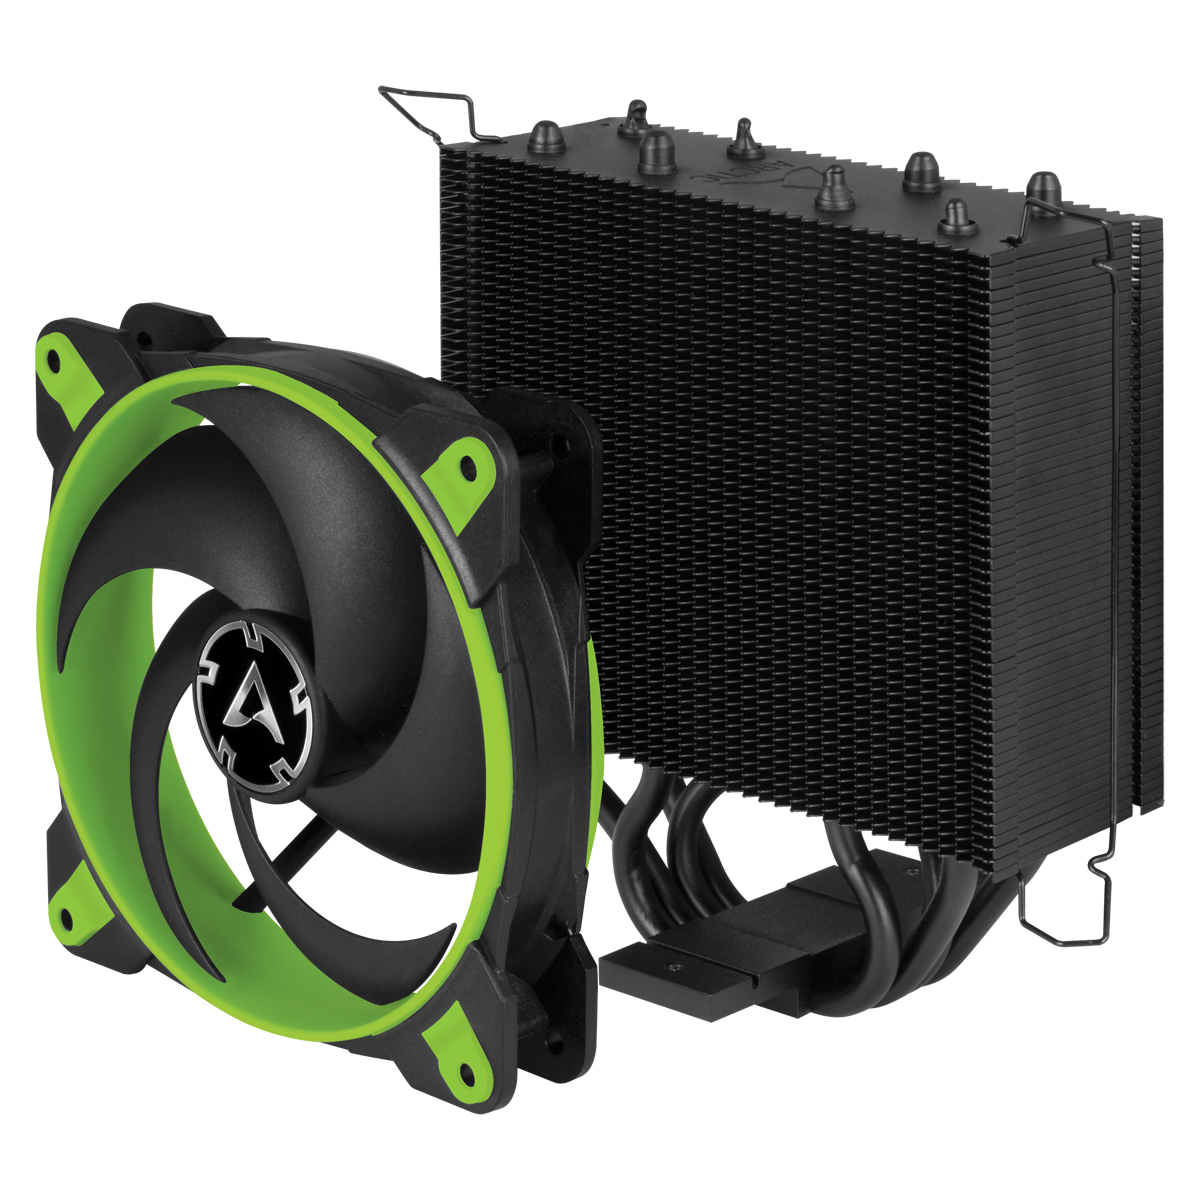 Tower CPU Cooler with BioniX P-Fan ARCTIC Freezer 34 eSports (Green) Fan and Cooling Unit Separated